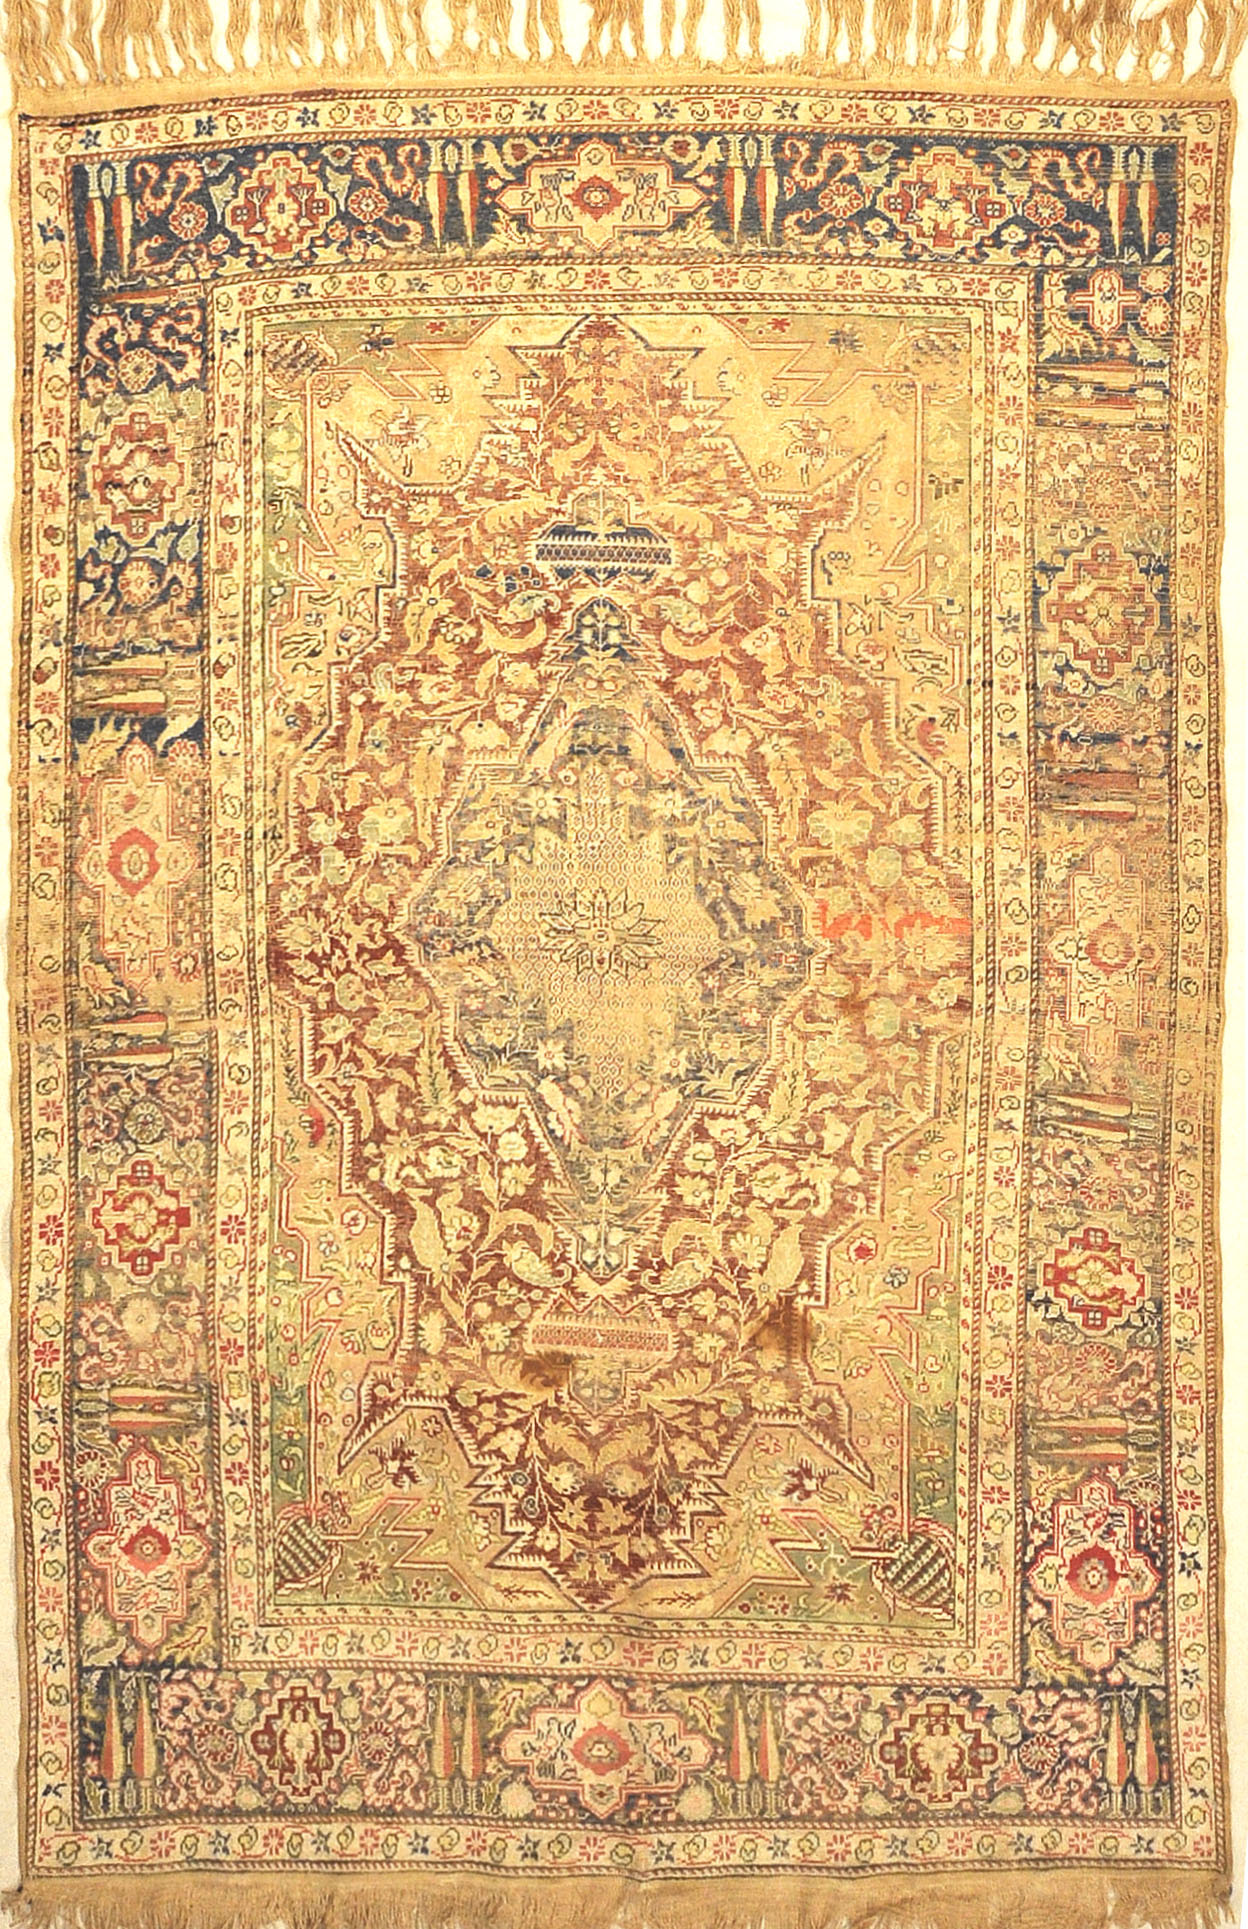 Antique Silk Turkish Kaysari Rug. A piece of genuine, woven carpet art sold by the Santa Barbara Design Center, Rugs and More.